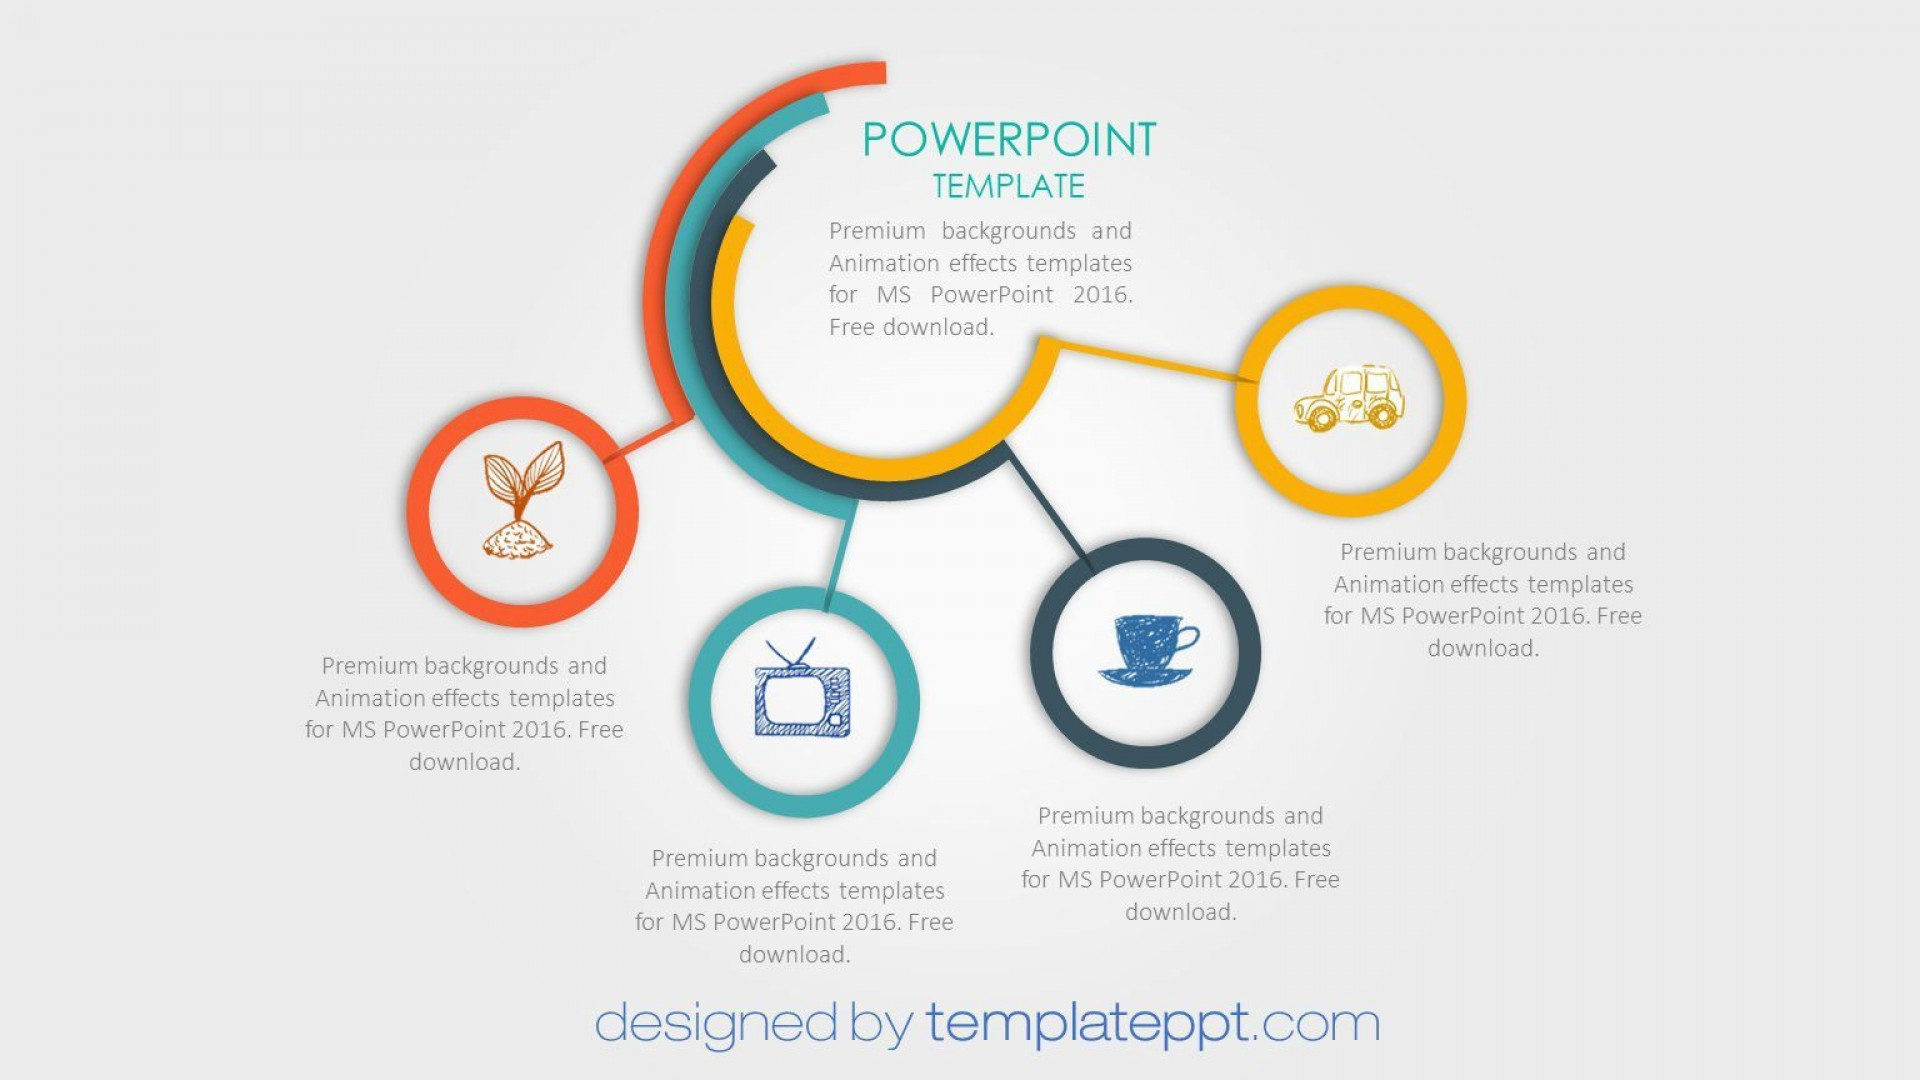 009 Remarkable Animated Powerpoint Template Free Download 2016 Highest Quality  3d1920